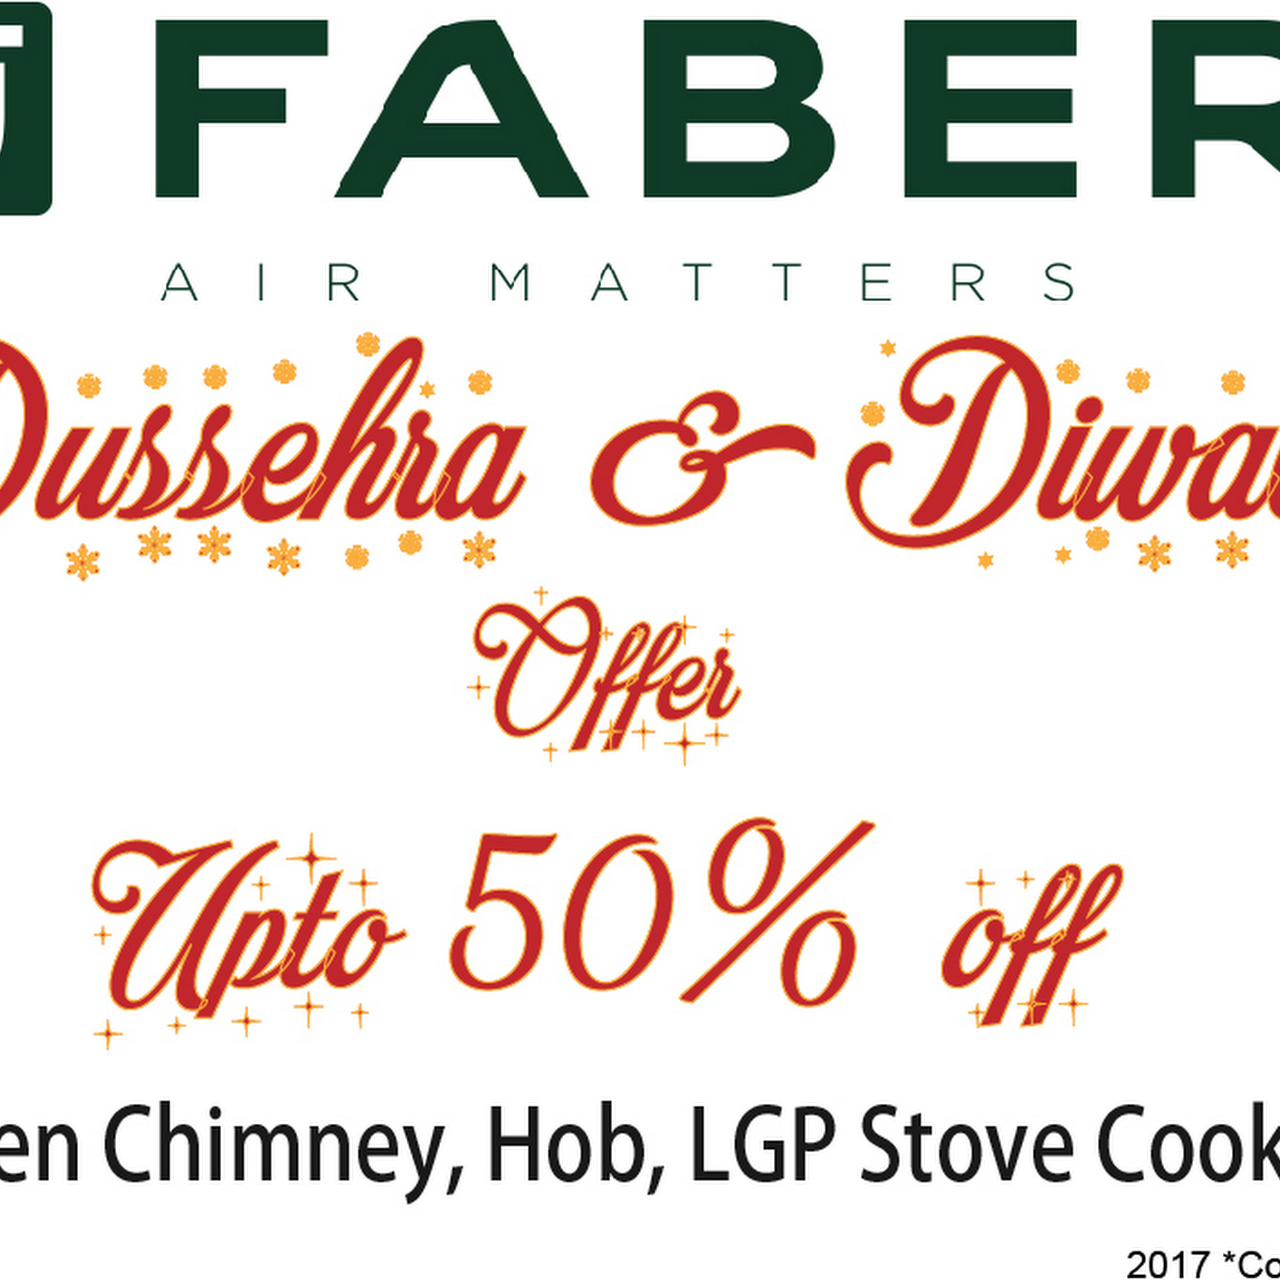 Anand Gas Tech - Faber Kitchen Chimney & Appliances Store